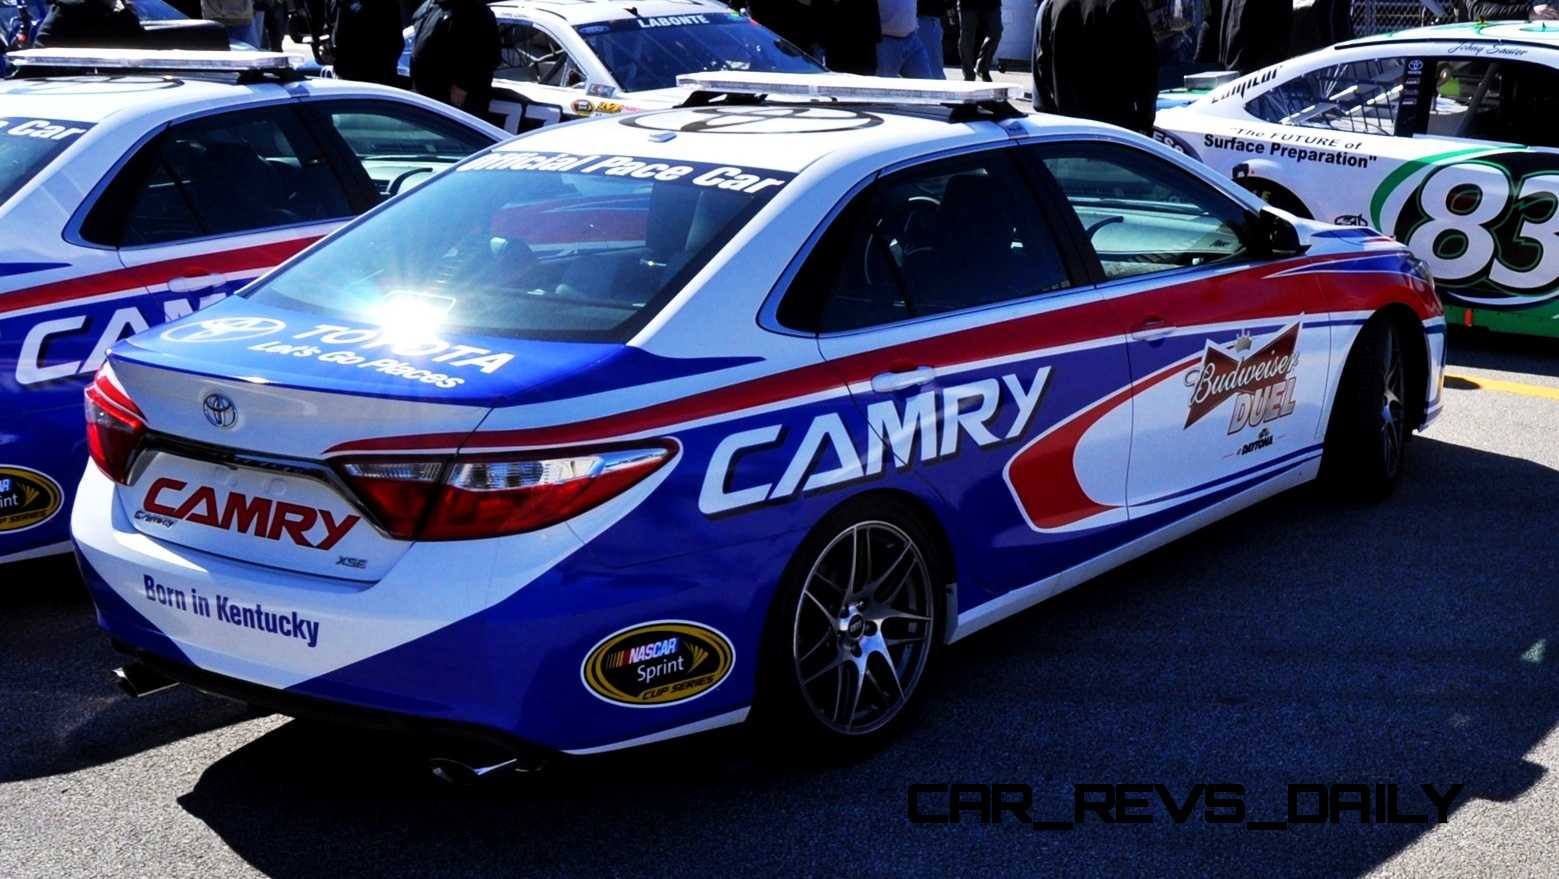 2015 Toyota Camry - DAYTONA 500 Official Pace Car 23